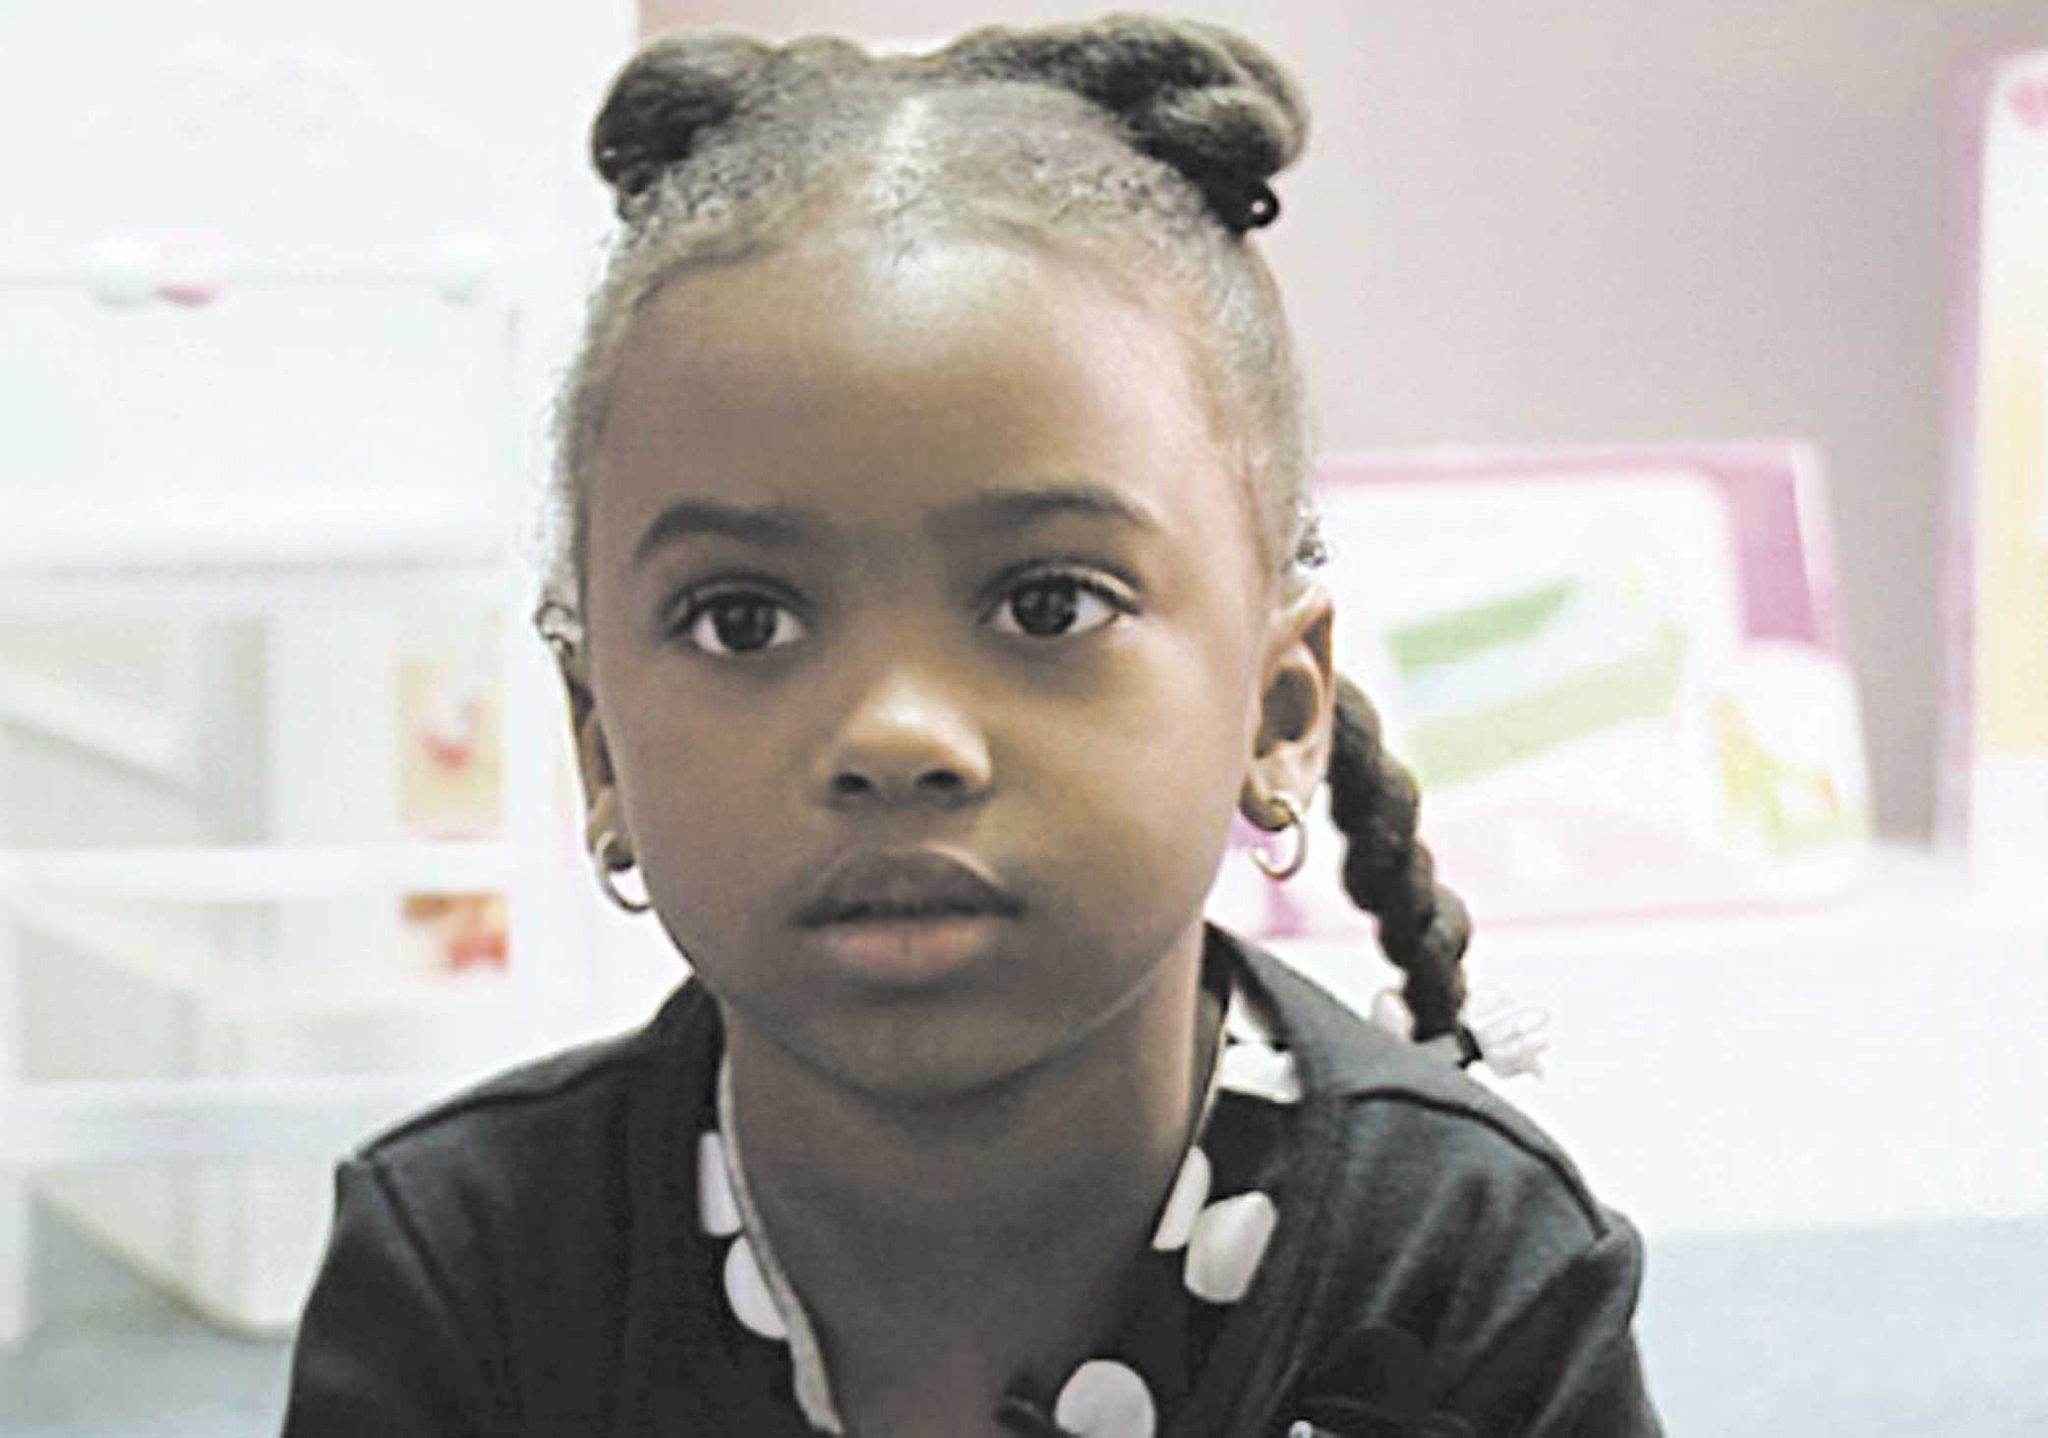 RT @sonsandbros: Meet Anala Beevers, the 5-year-old from New Orleans with an IQ higher than 145. She's amazing! http://t.co/eSZ6k4zOKW http…